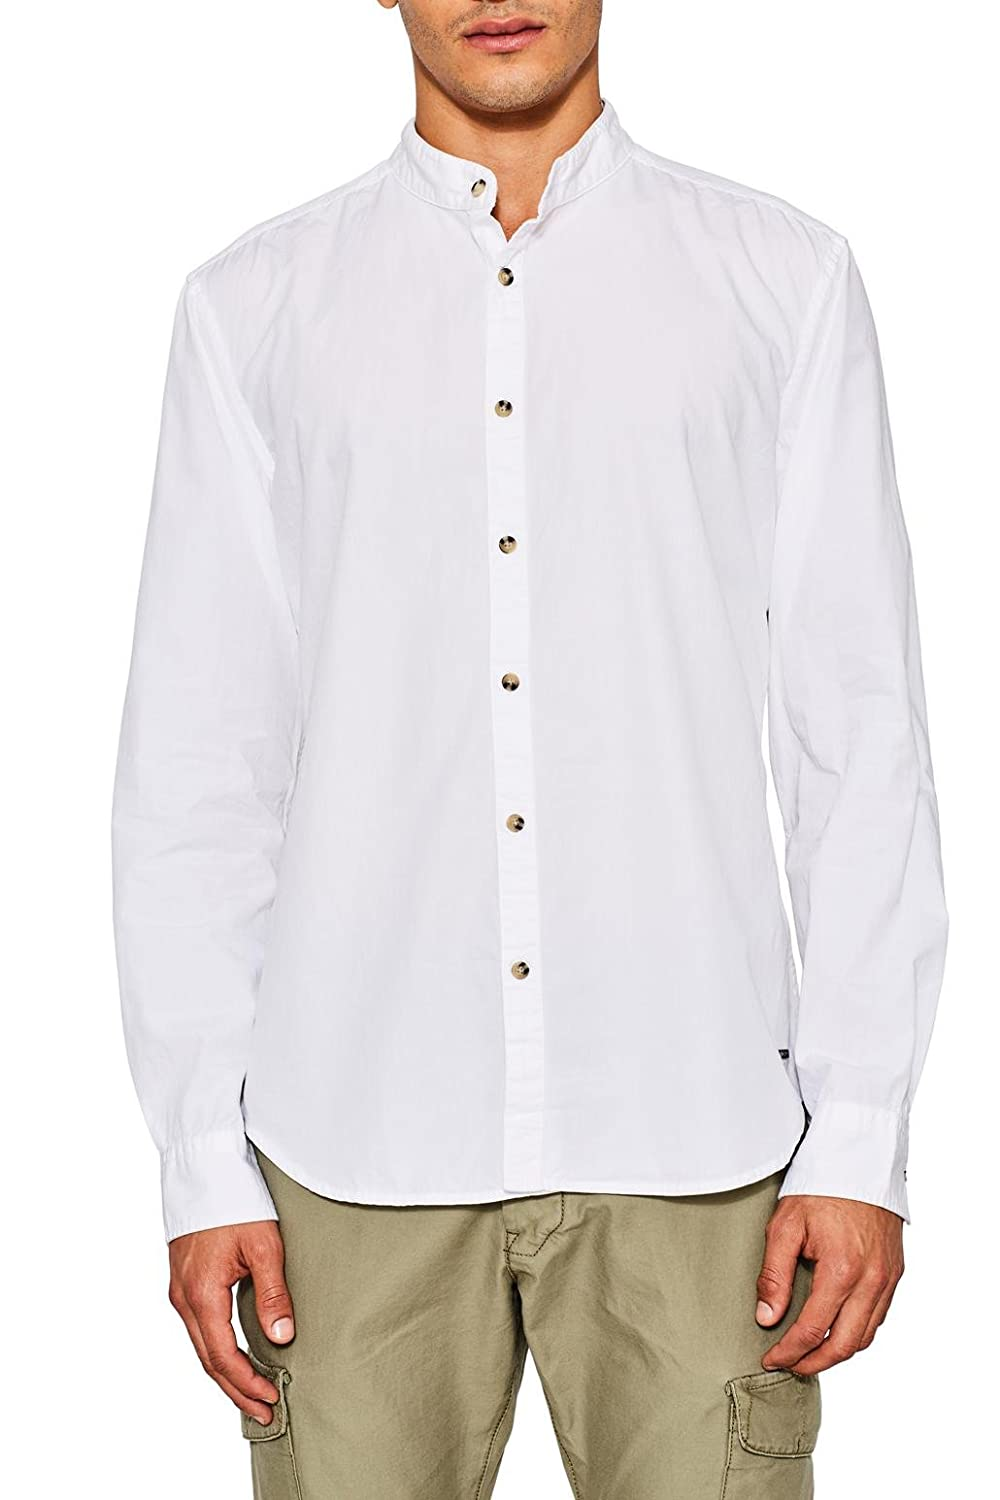 TALLA L. edc by Esprit 087cc2f010 Camisa, Blanco (White 100), Large para Hombre